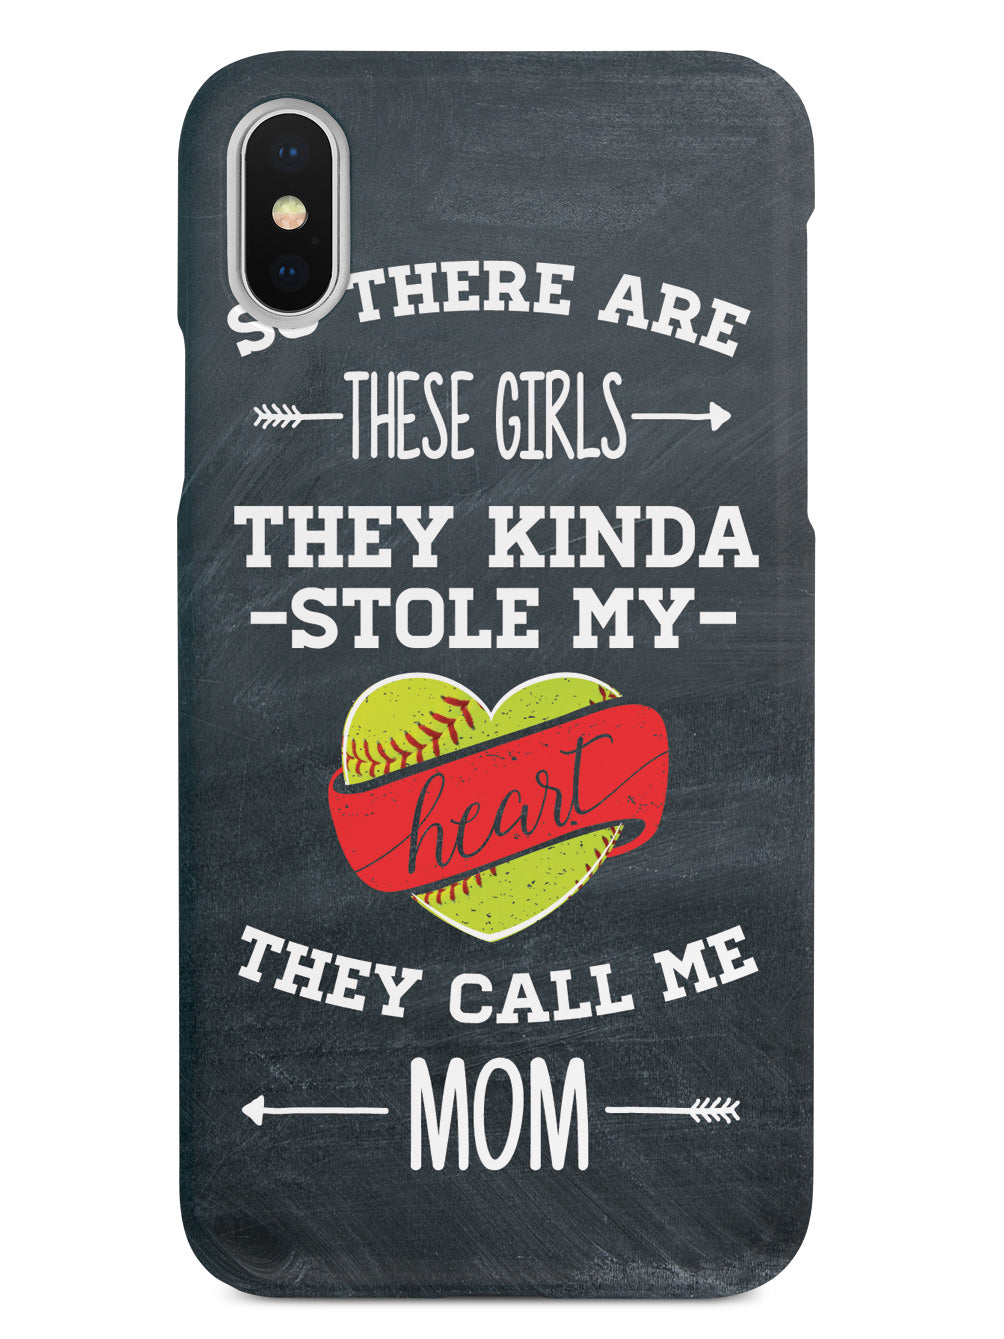 So There Are These Girls - Softball Player - Mom Case